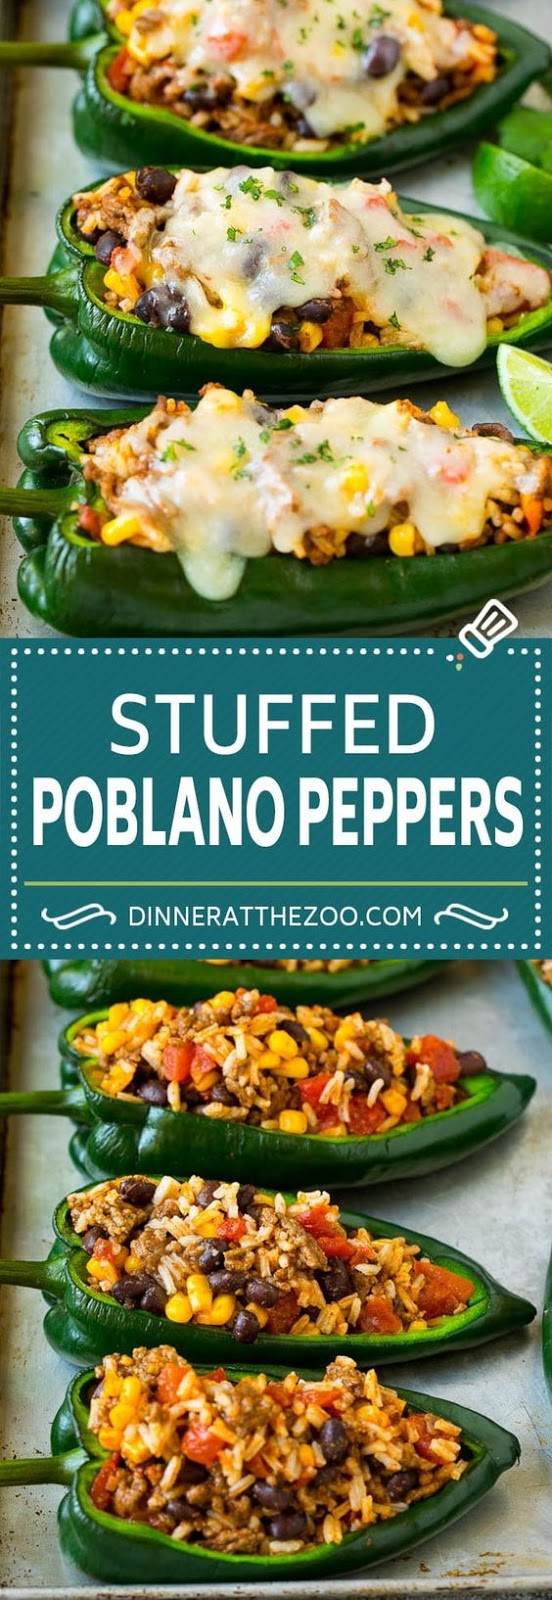 This recipe for stuffed poblano peppers is tender pasilla chiles filled with a mixture of ground beef, rice, black beans and vegetables, then topped with cheese and baked. A hearty Mexican style meal that's sure to get rave reviews!